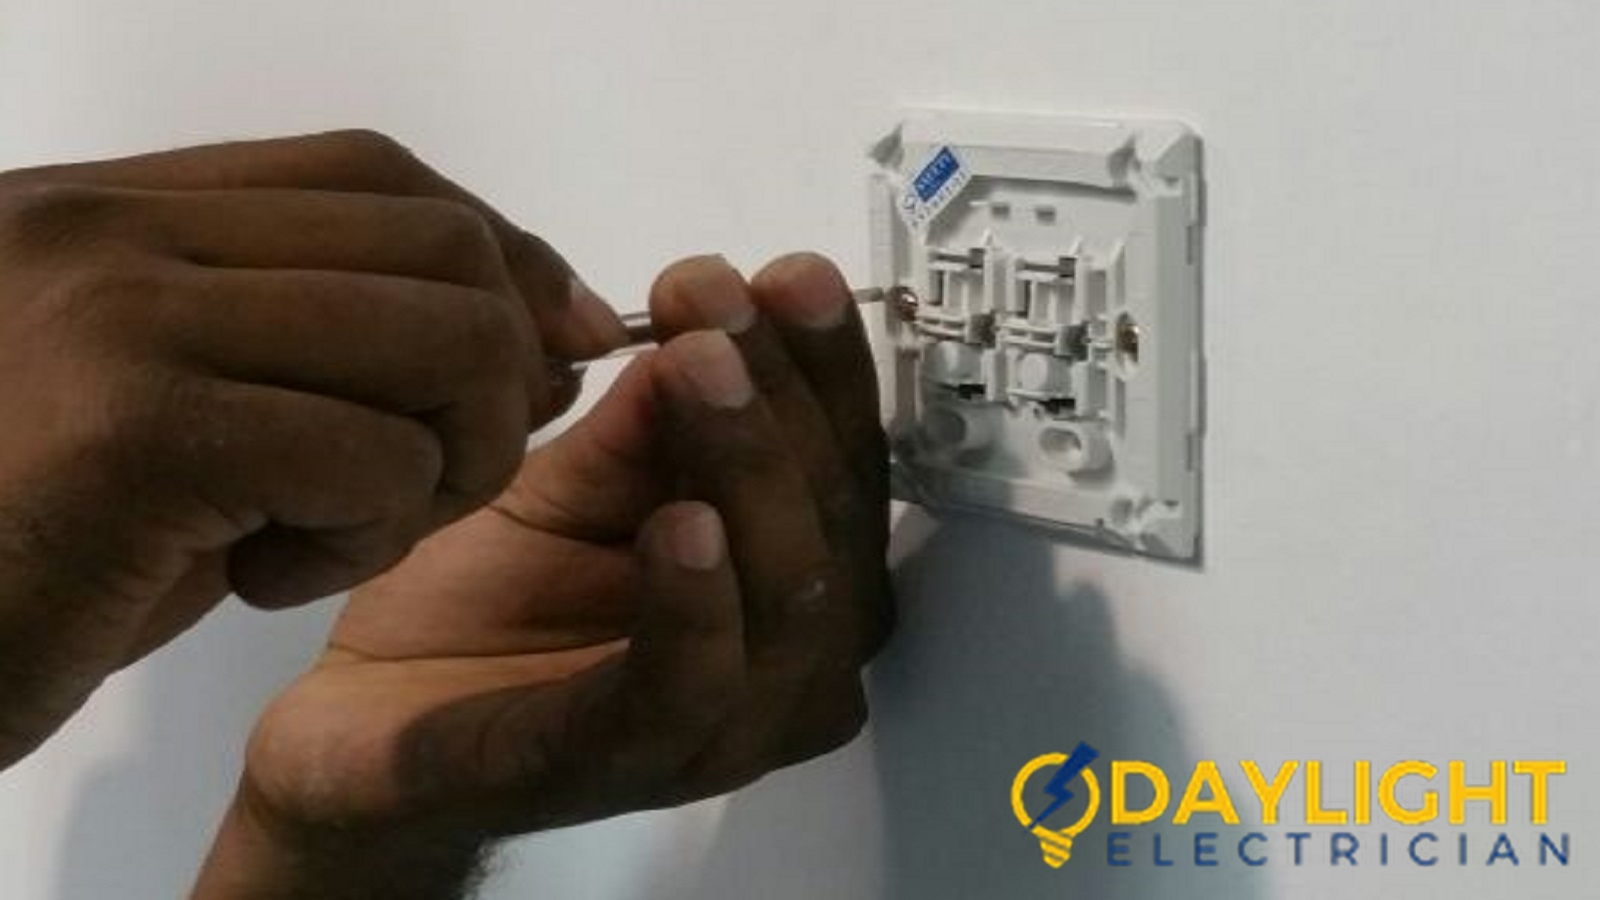 Two-Way-Light-Switch-Installation-Electrician-Singapore-Commercial-Bedok-feat-1